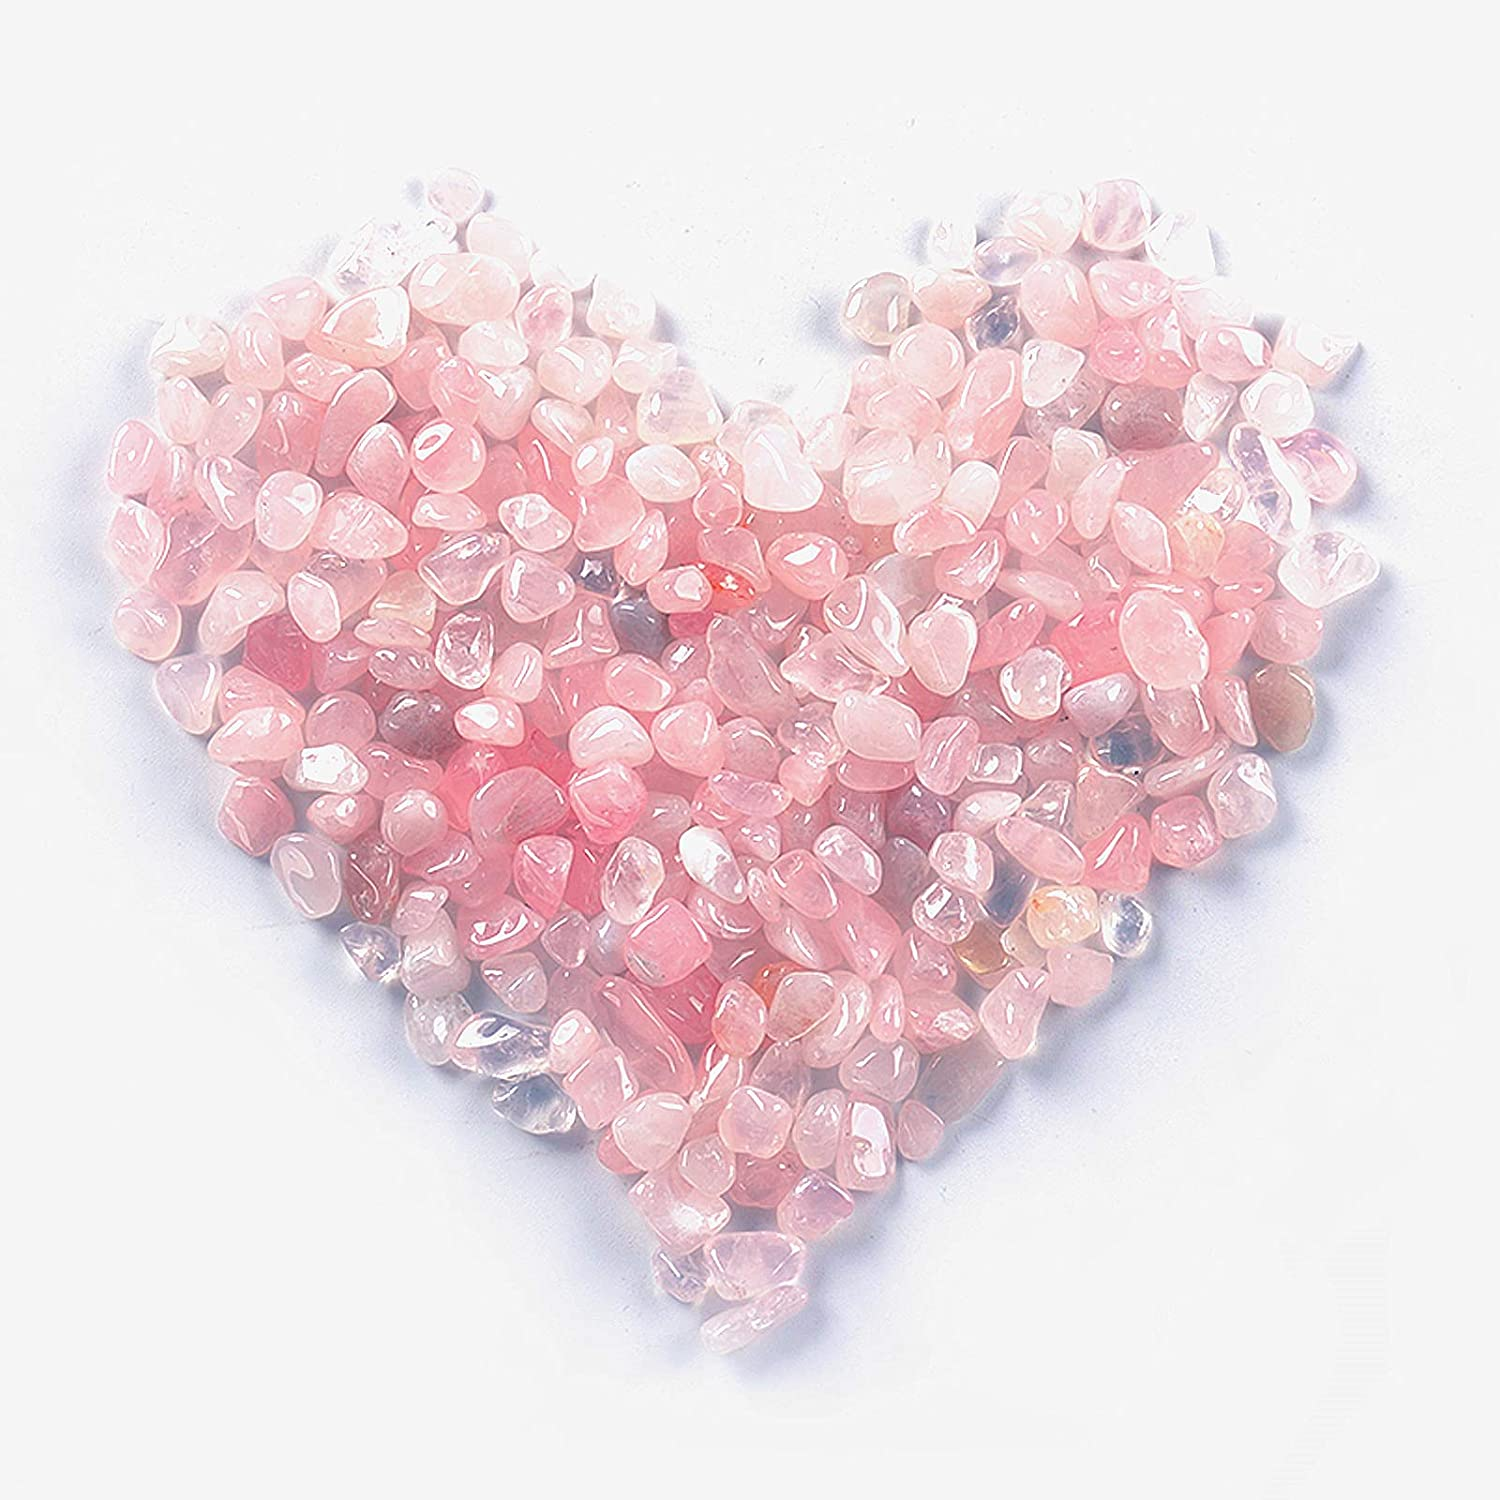 HOSKO Quartz Tumbled Chips Stone Finally popular All items in the store brand Natural Crushed Crystal Rocks